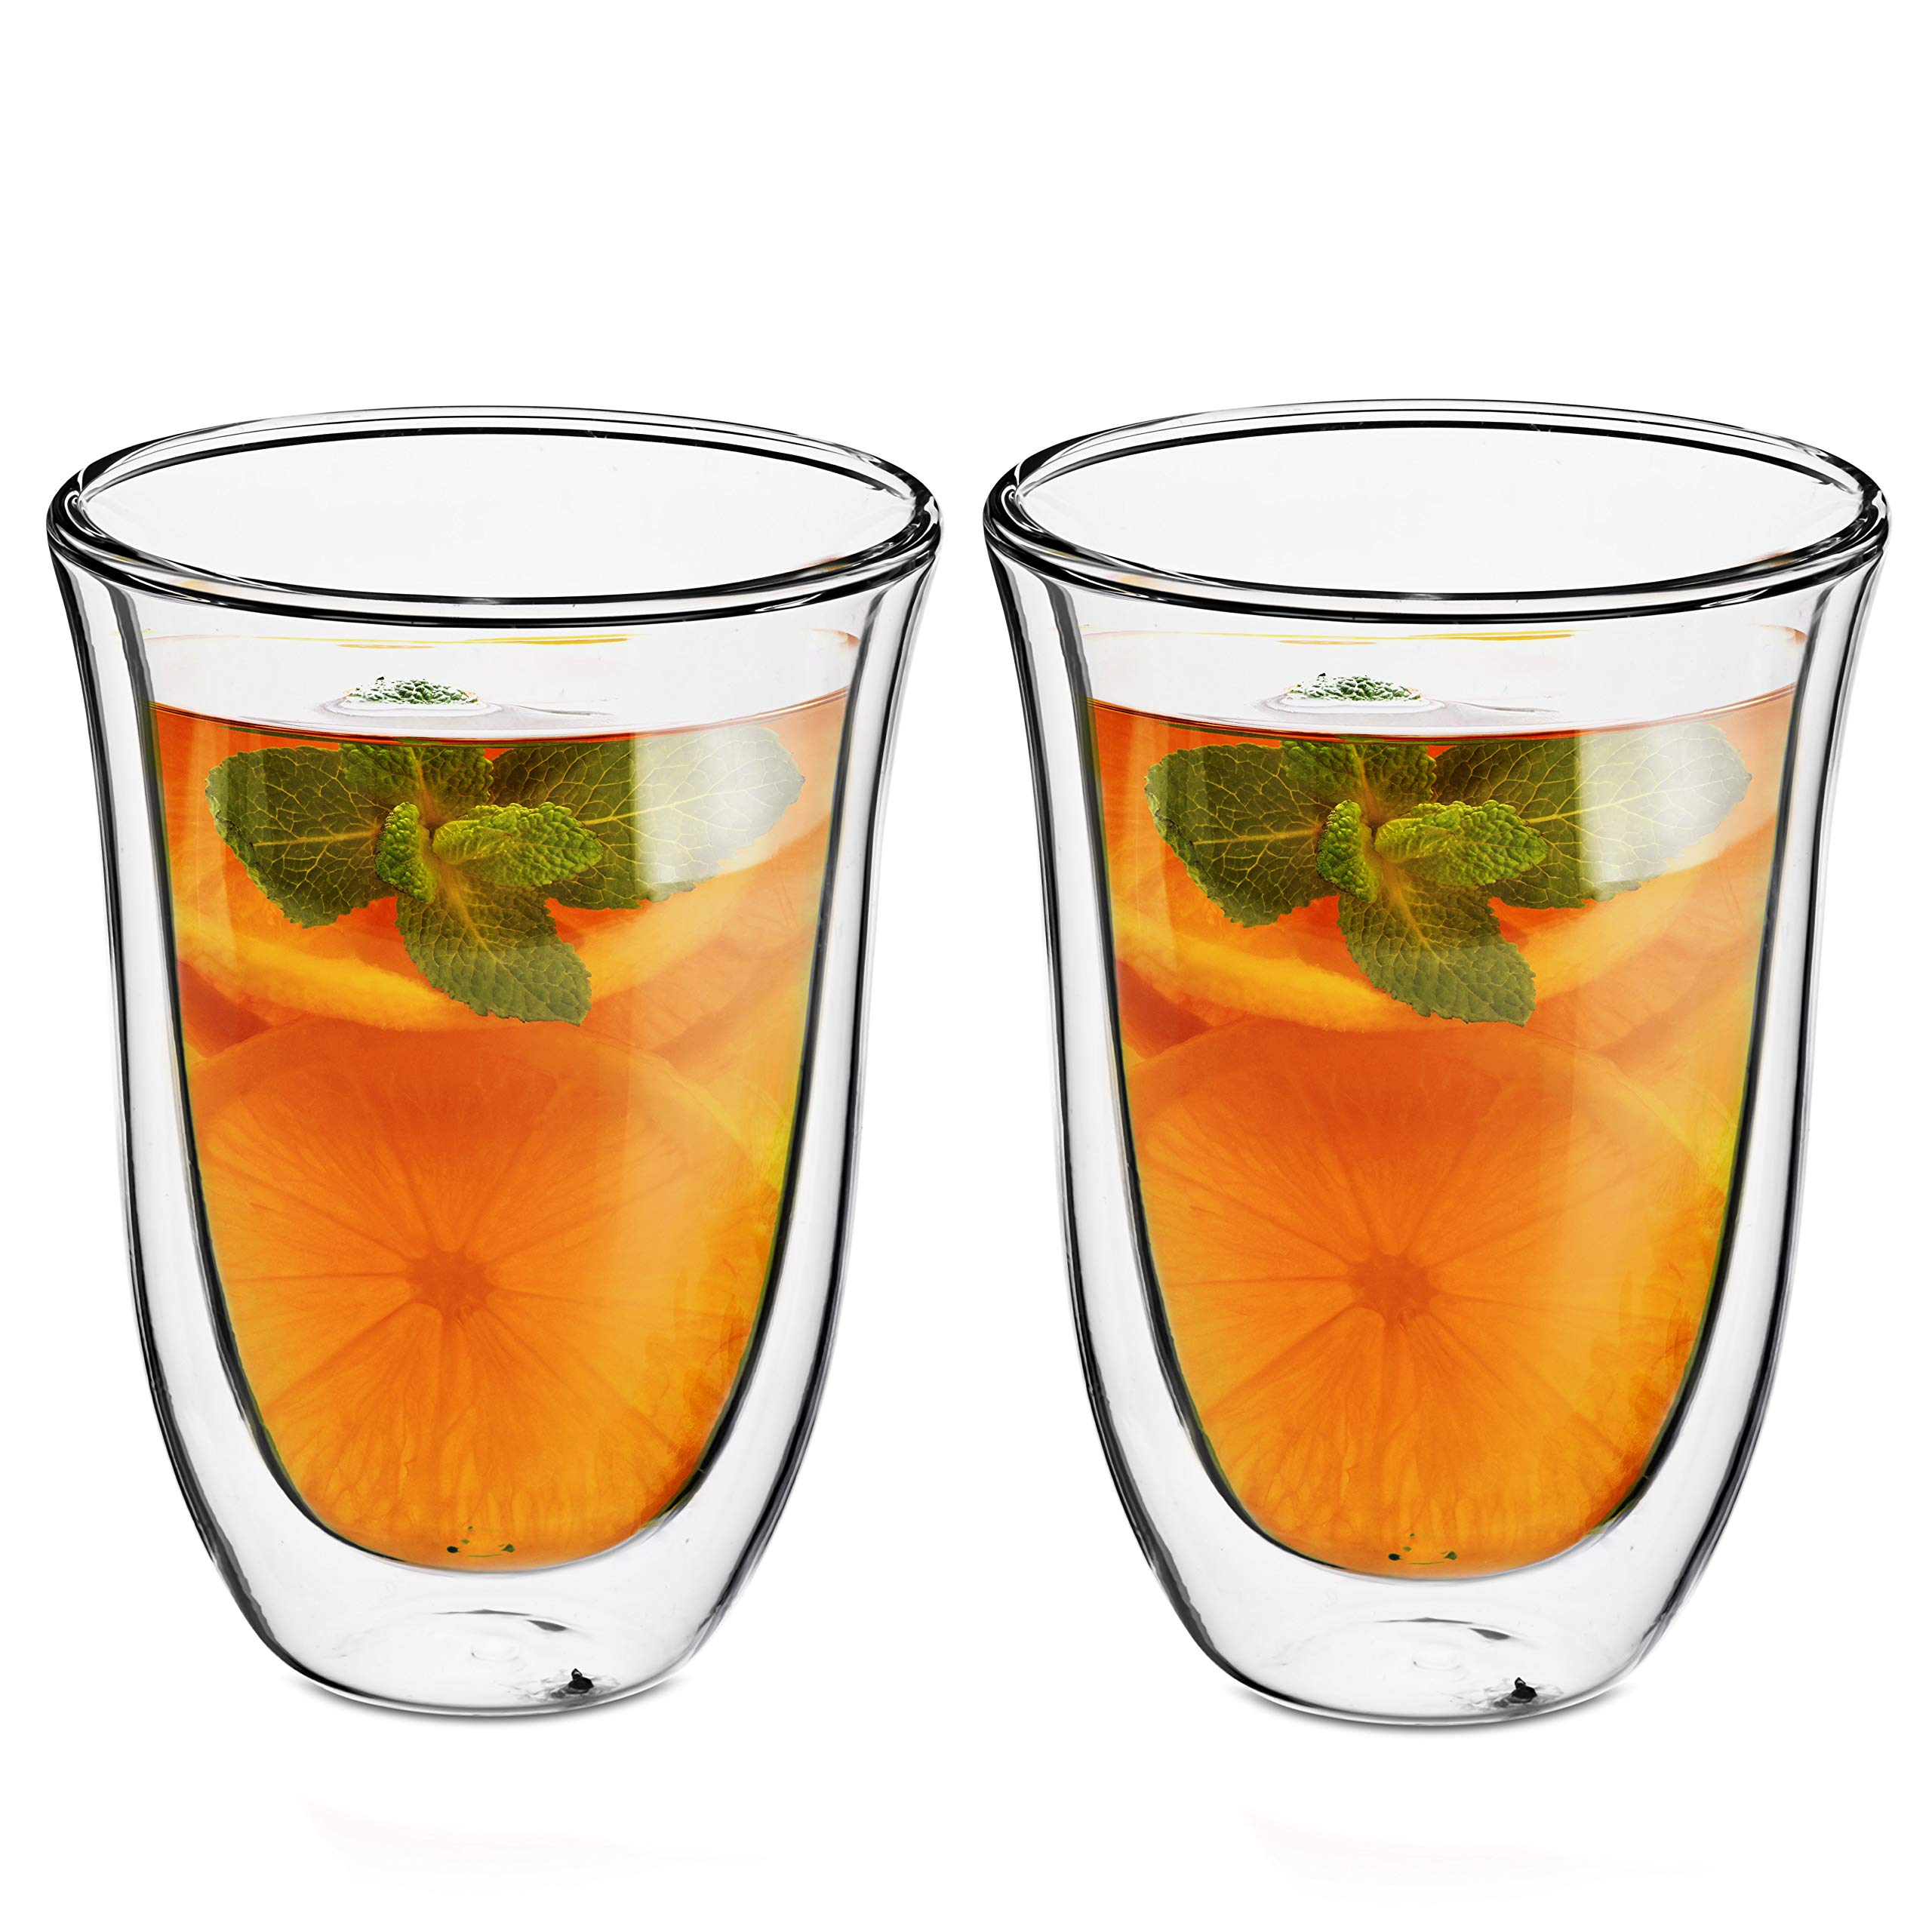 Style Setter Double Wall Tumblers – Set of 2 9.5oz Insulated Home Barware Glasses for Cold Drinks, Cocktails, Coffee, Hot Tea & Other Beverages – Unique Gift Idea for Birthday, Holiday & More